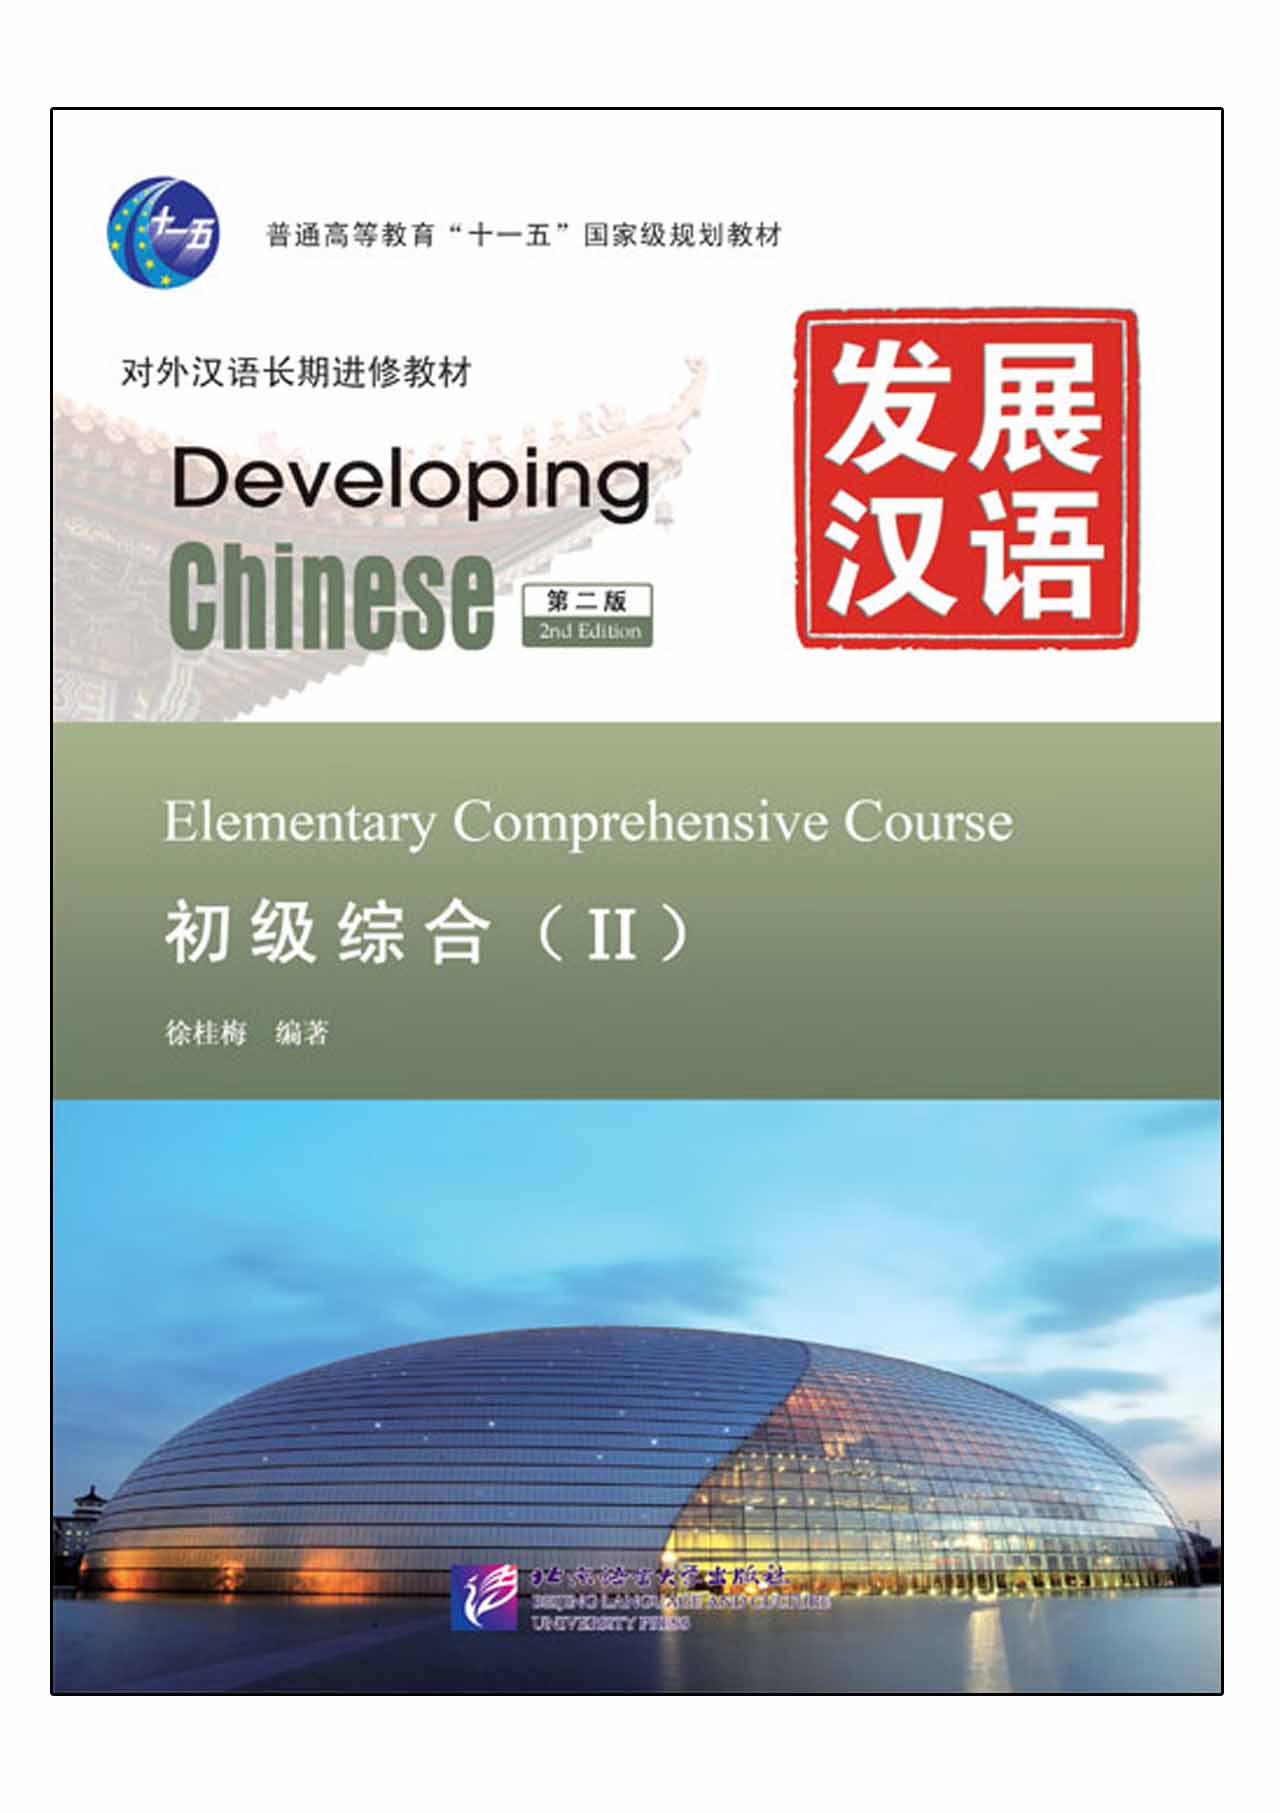 Developing Chinese (2nd Edition) Elementary Comprehensive Course Ⅱ+MP3 发展汉语(第2版)初级综合(Ⅱ)(含1MP3)